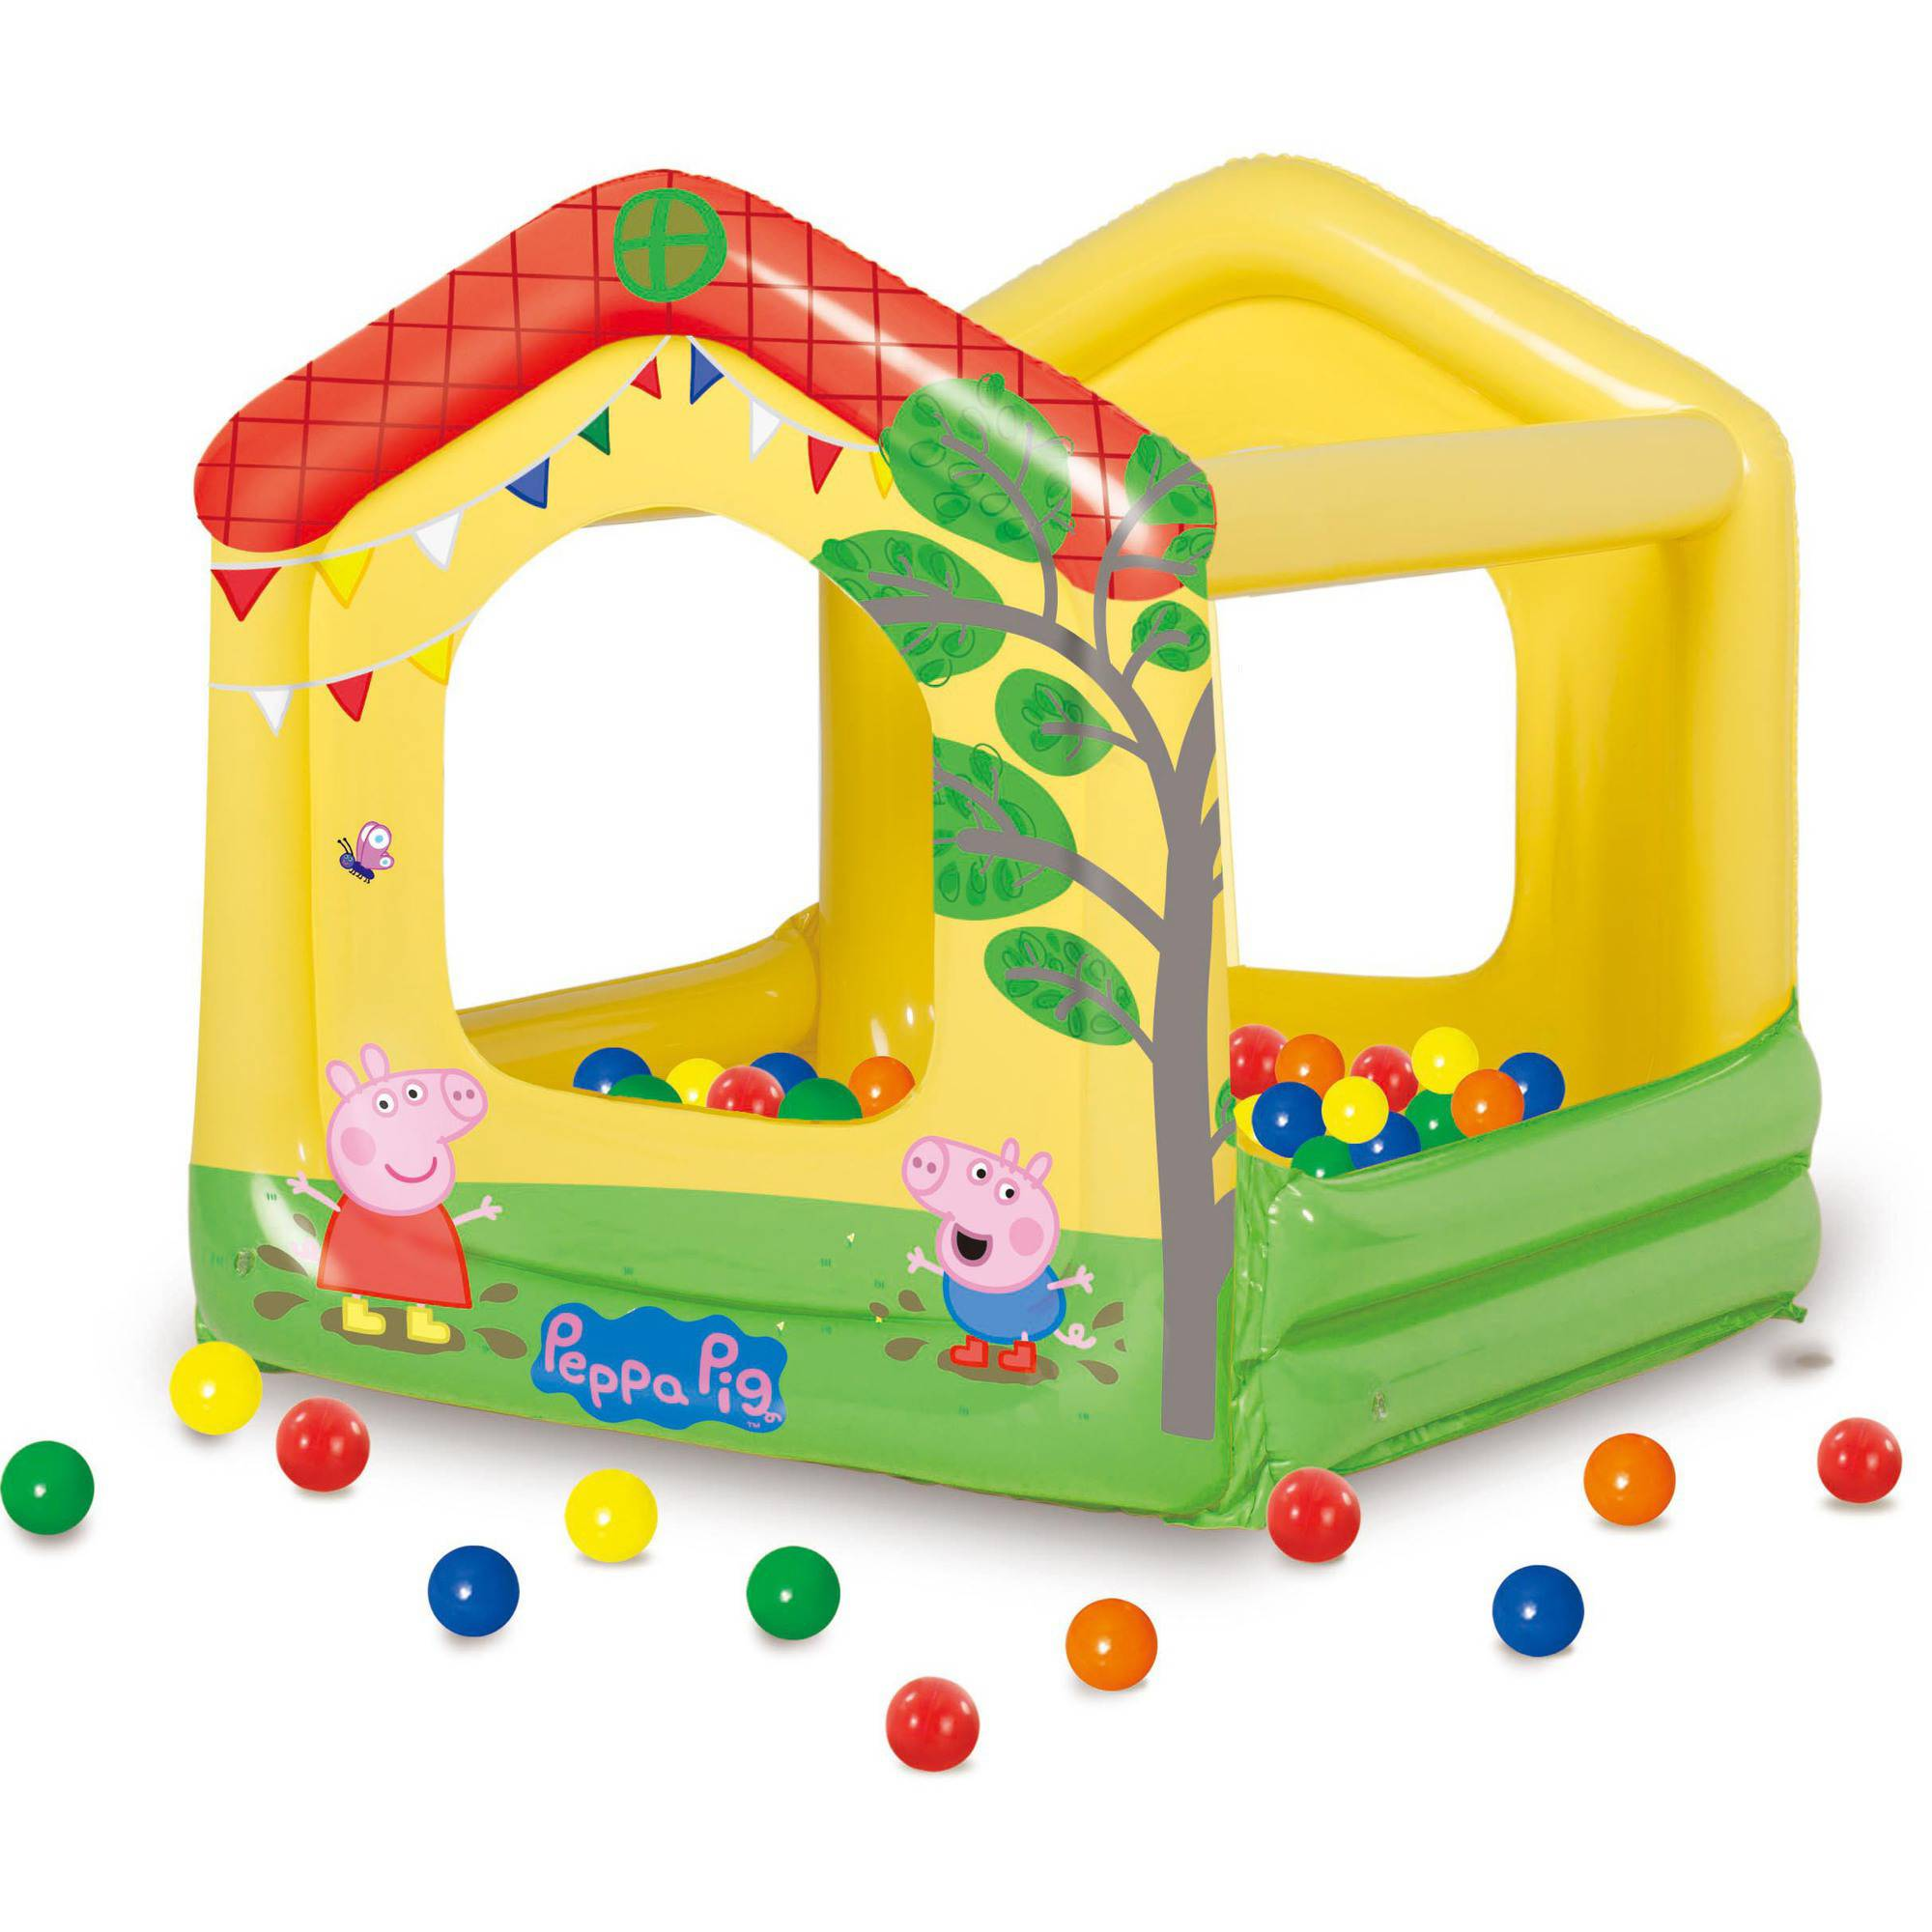 sc 1 st  Walmart & Peppa Pig Tree House Play Center Ball Pit - Walmart.com